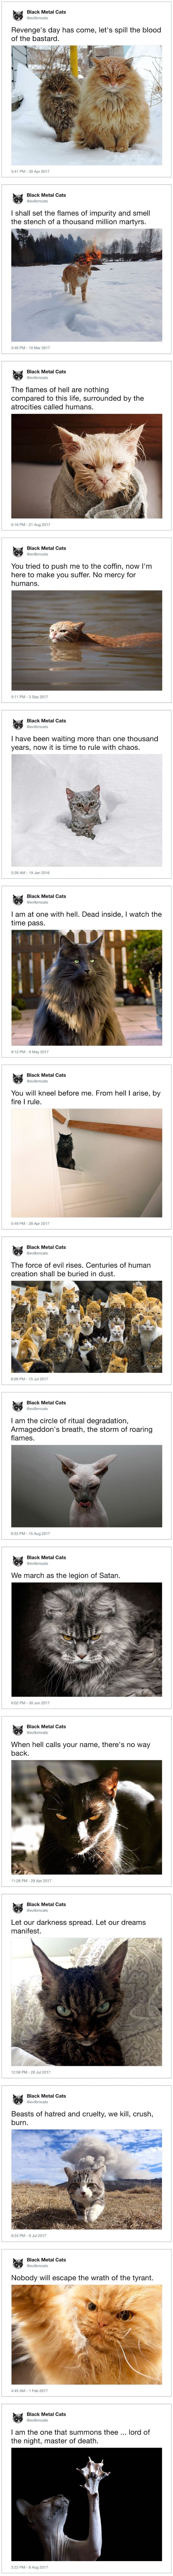 Cat pictures paired with metal lyrics